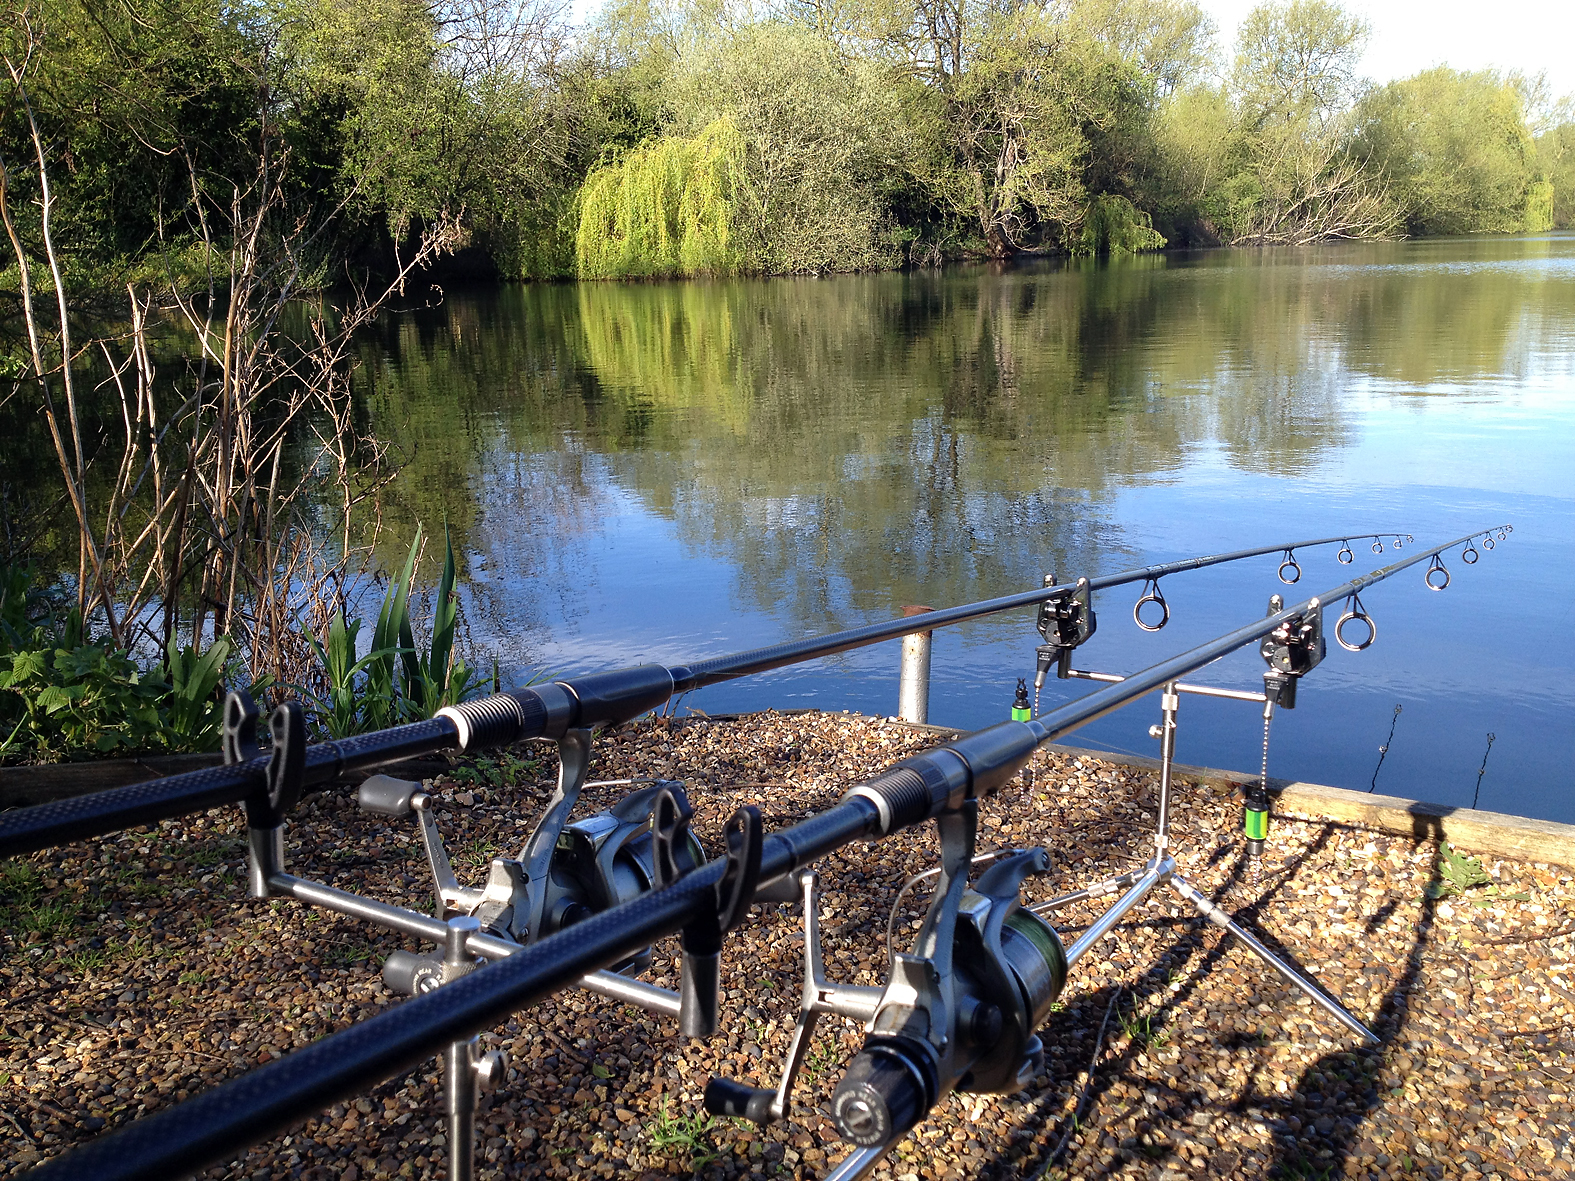 A good looking swim, plenty of features, and the odd fish crashing in the margins...